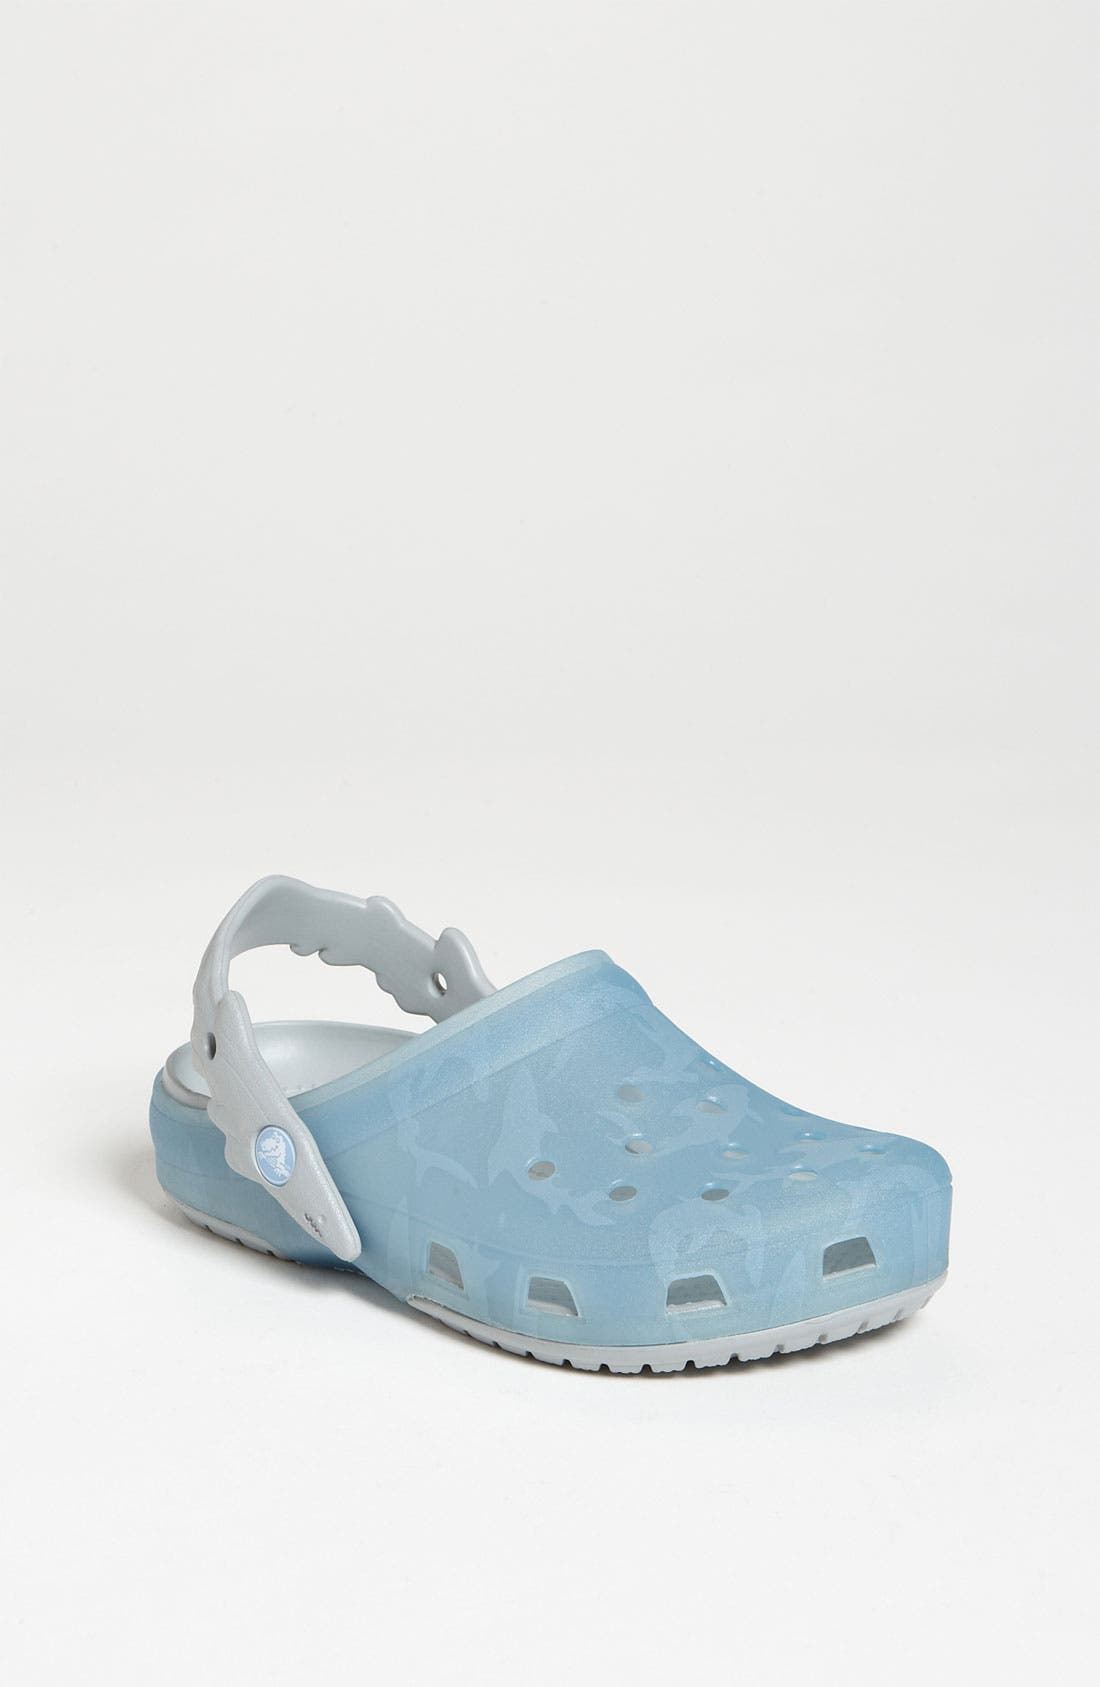 Main Image - CROCS™ 'Chameleon Shark' Slip-On (Toddler & Little Kid)